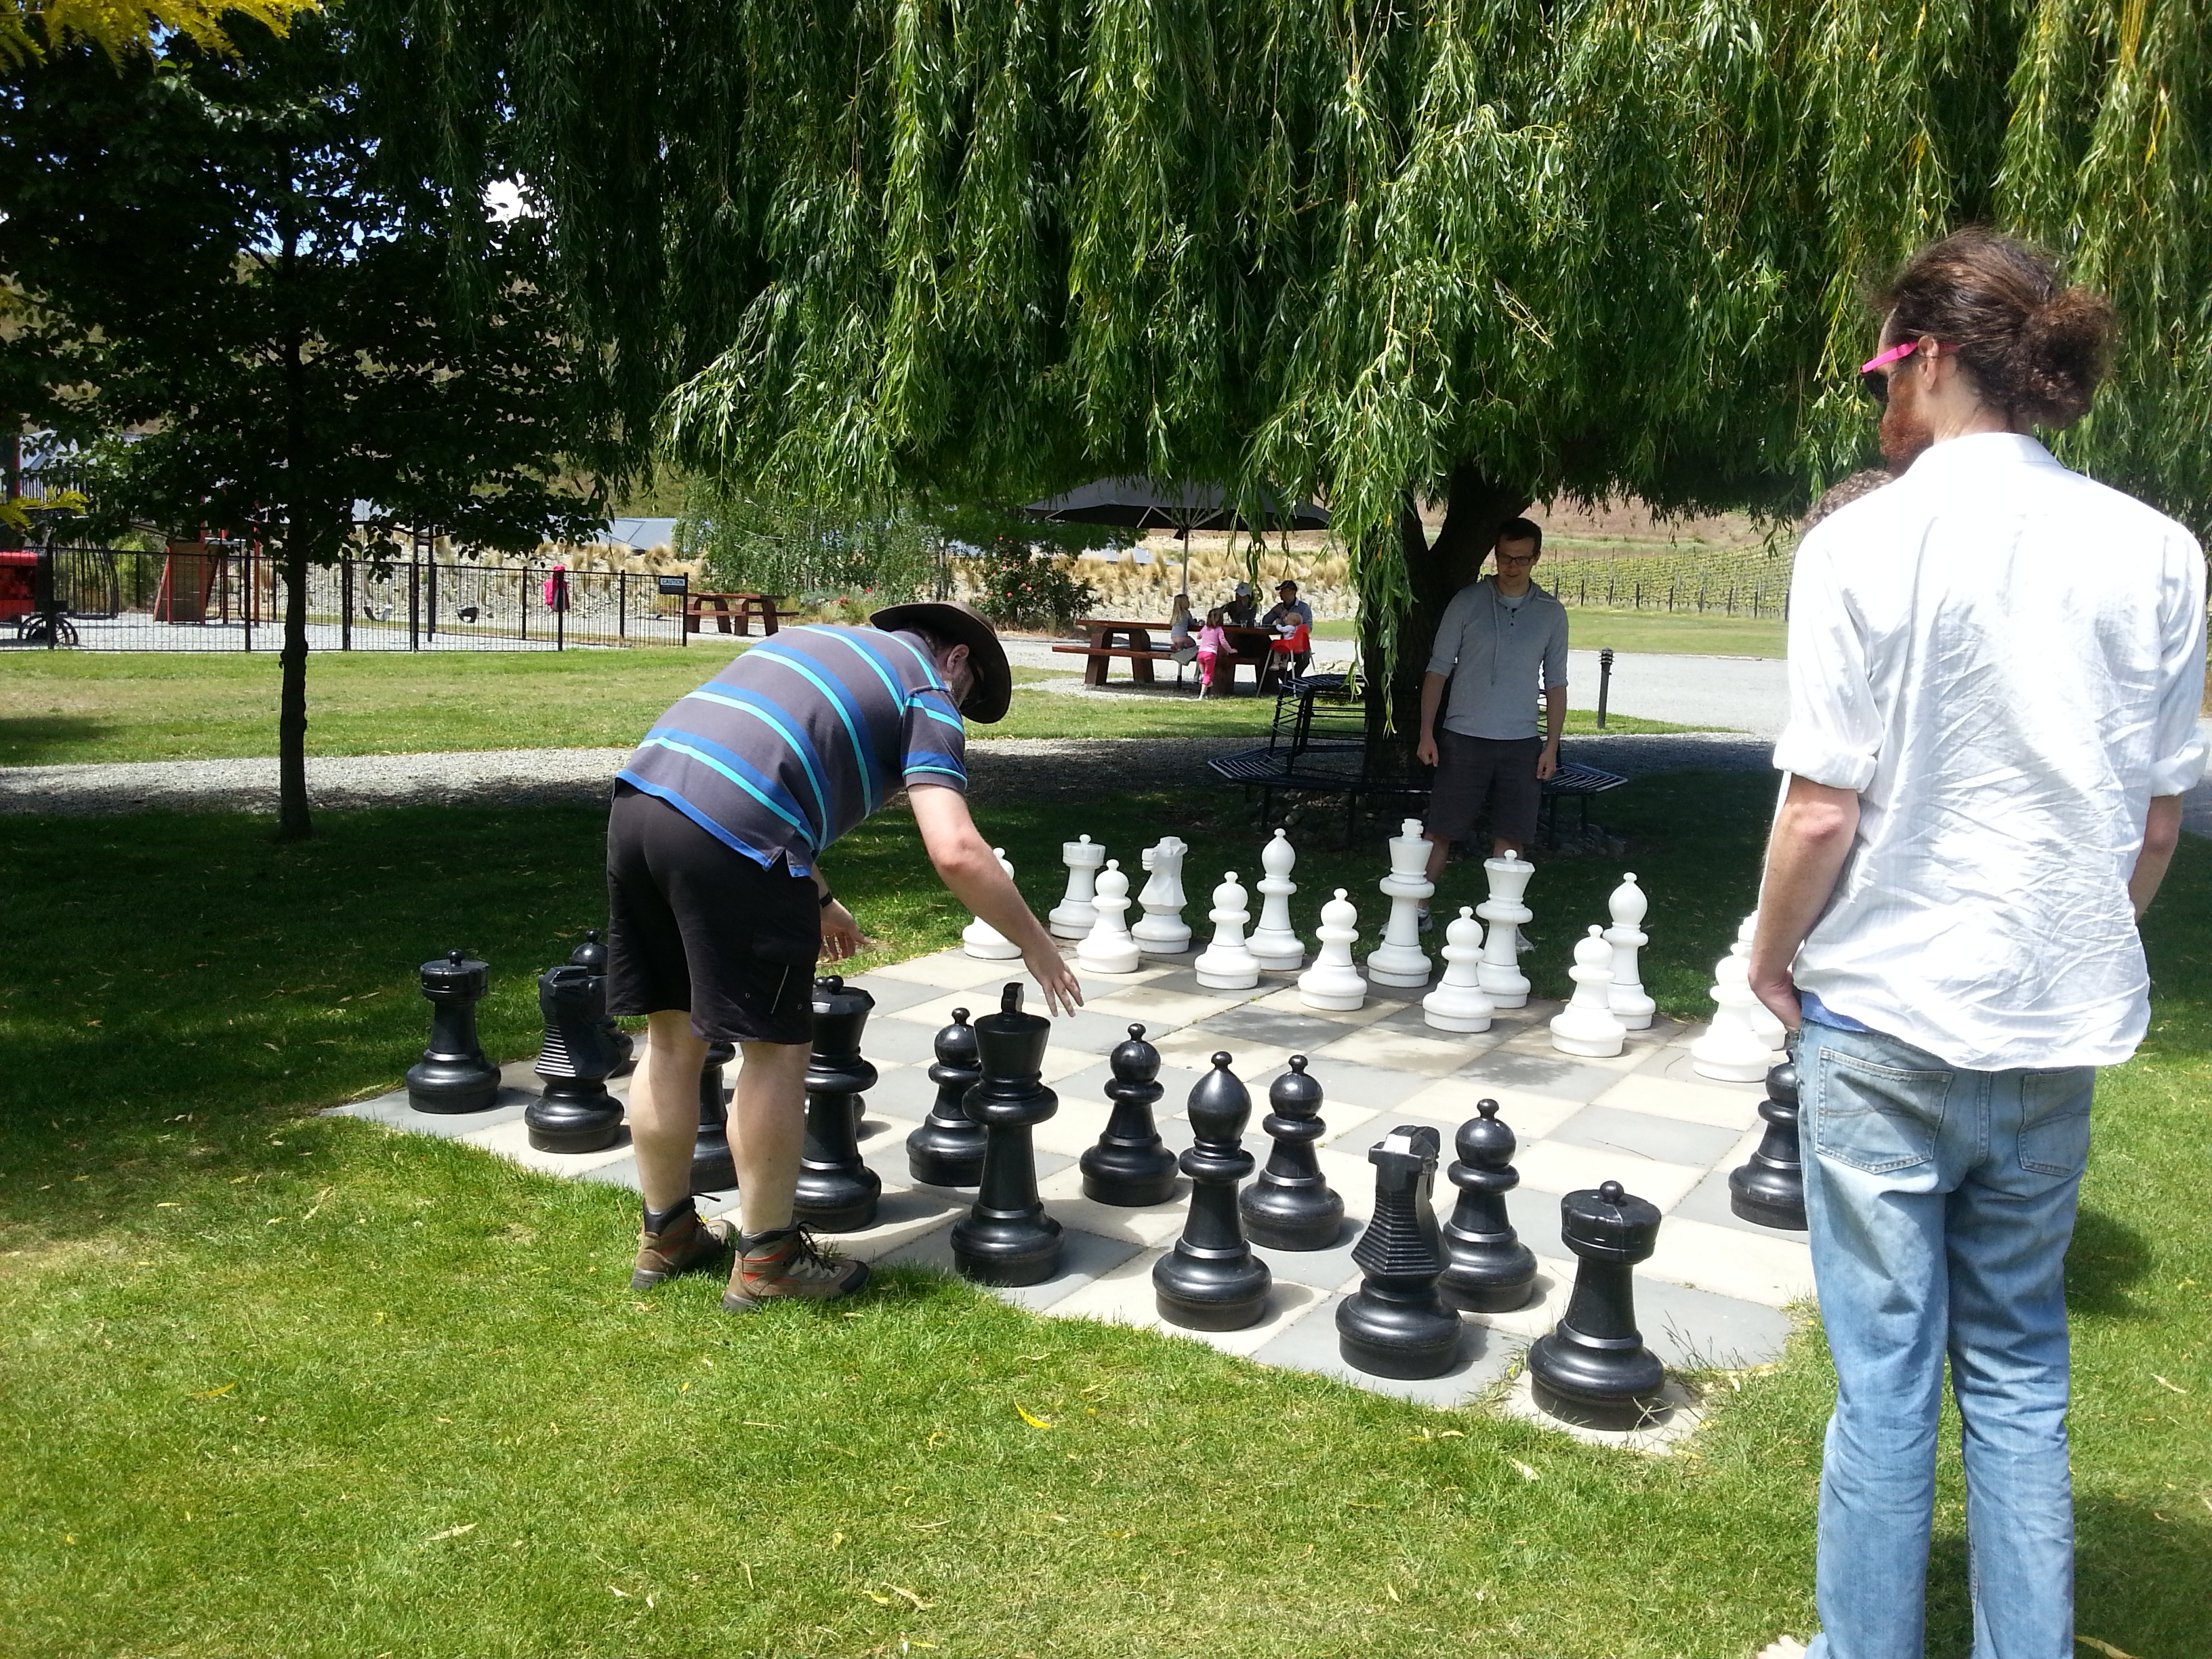 Chess in the sunshine